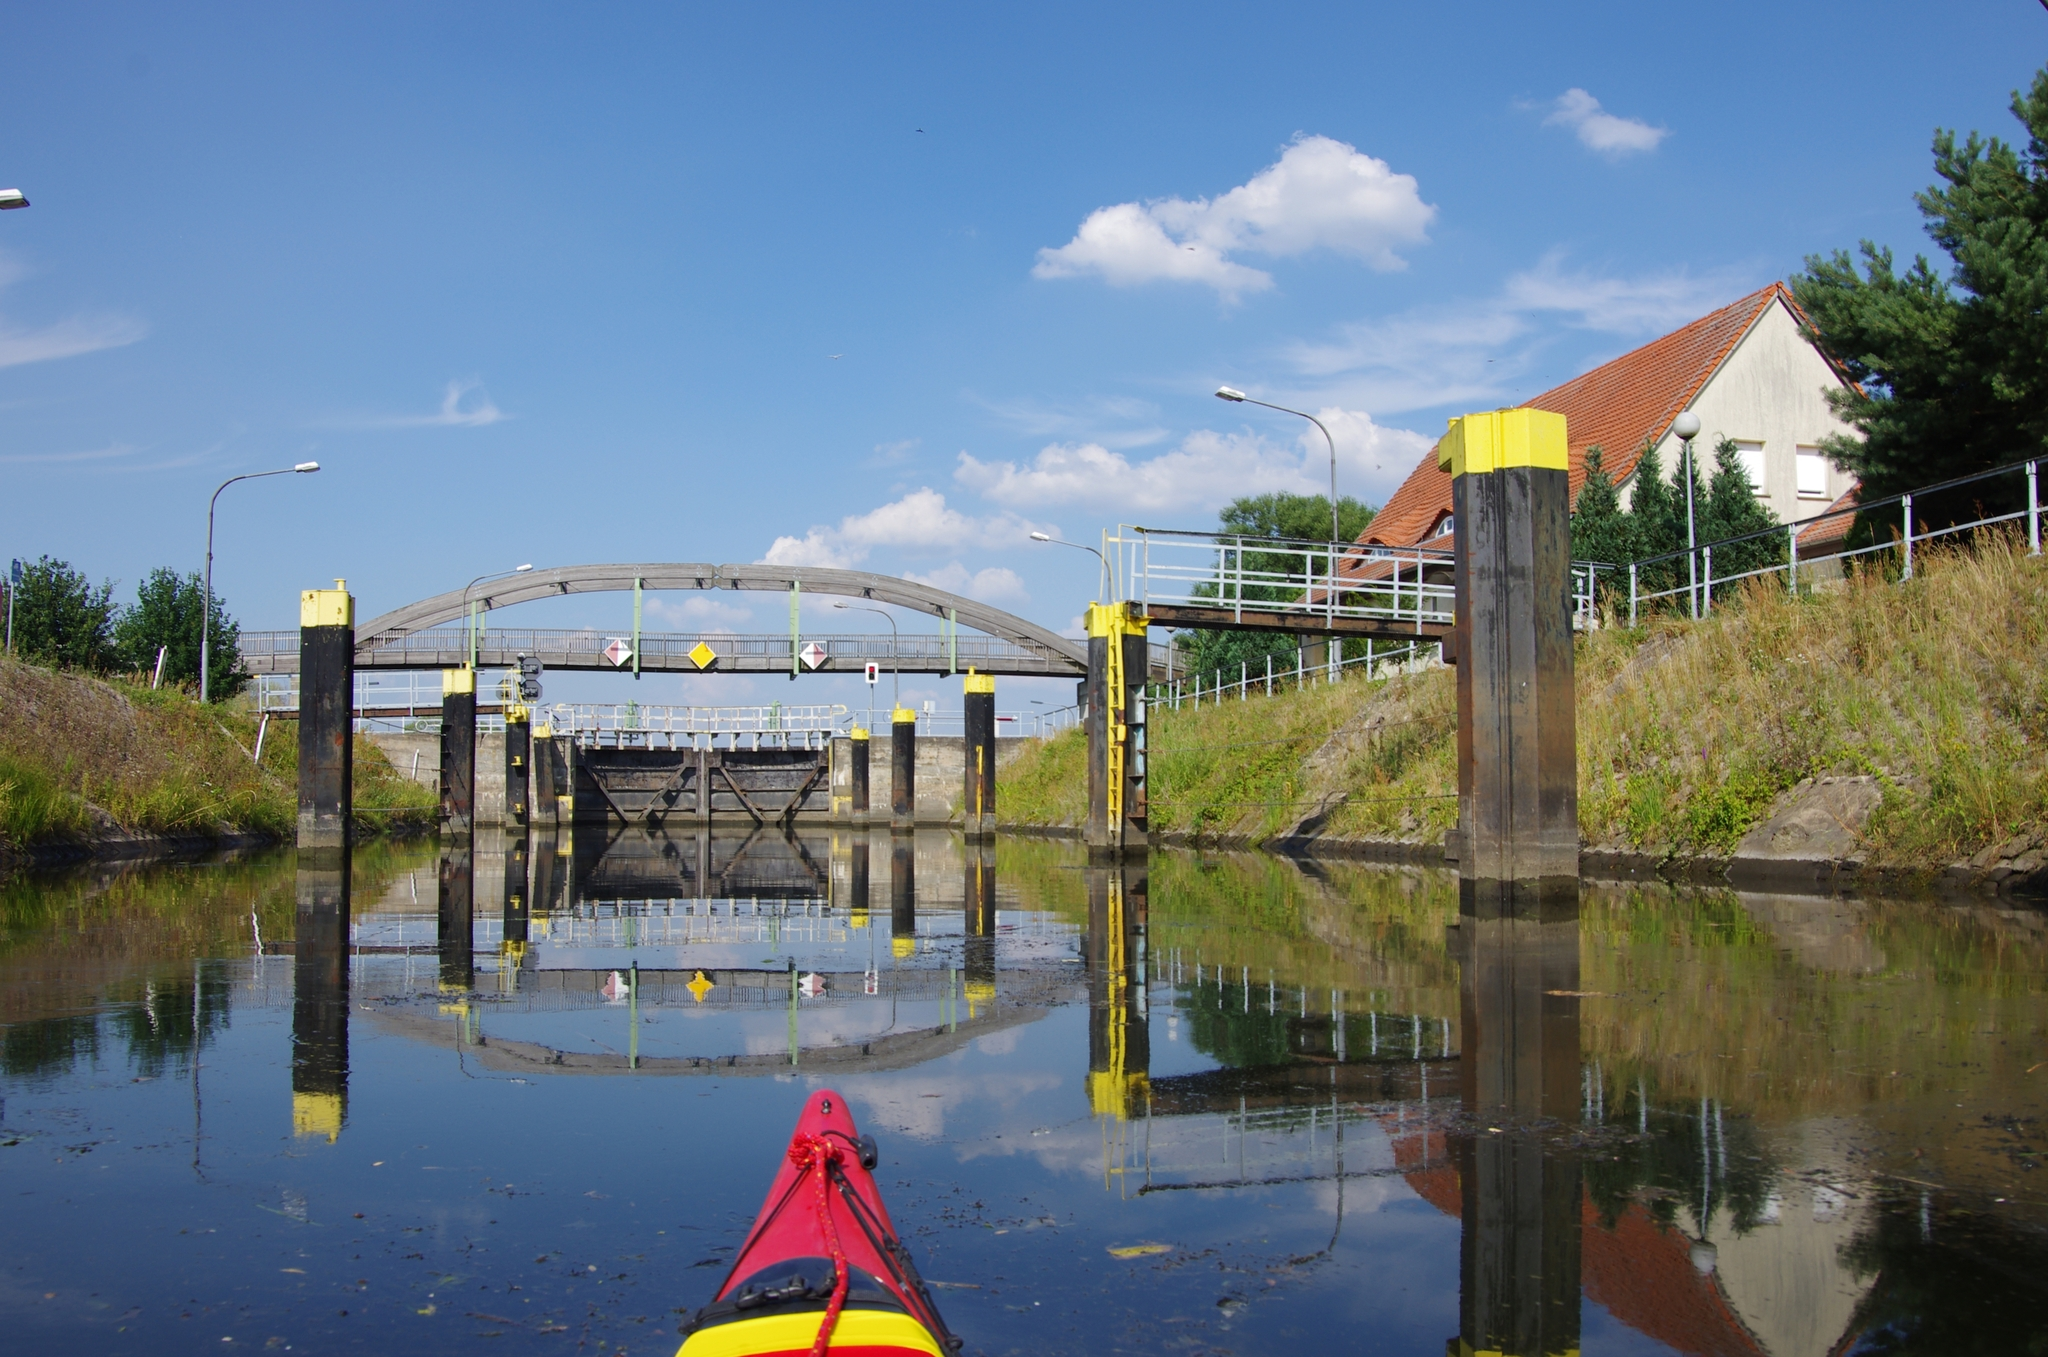 kayaking-odra-east-and-west_15-13-22_25-07-2016